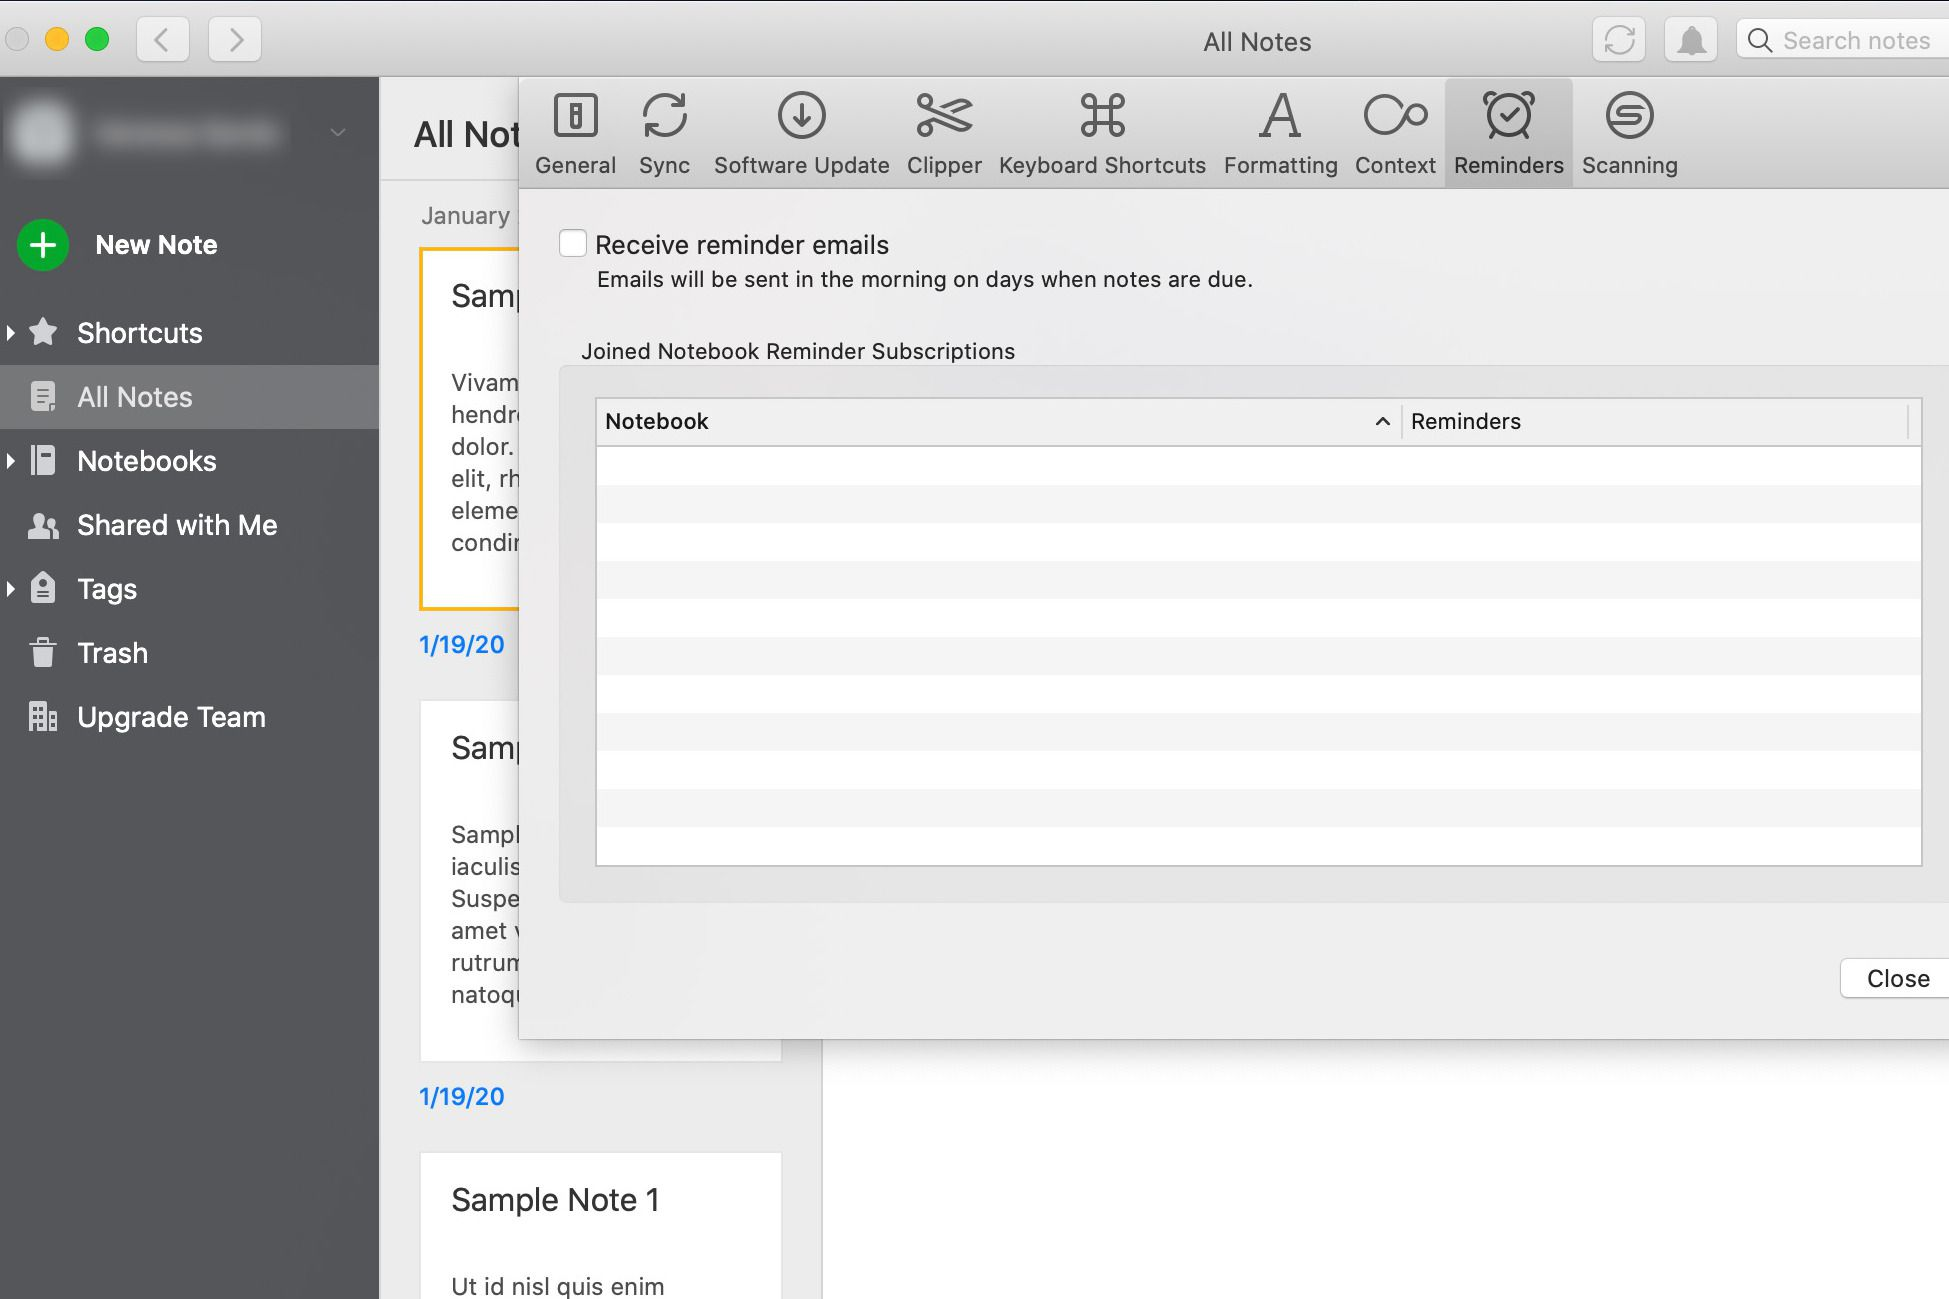 Get emailed reminders in Evernote